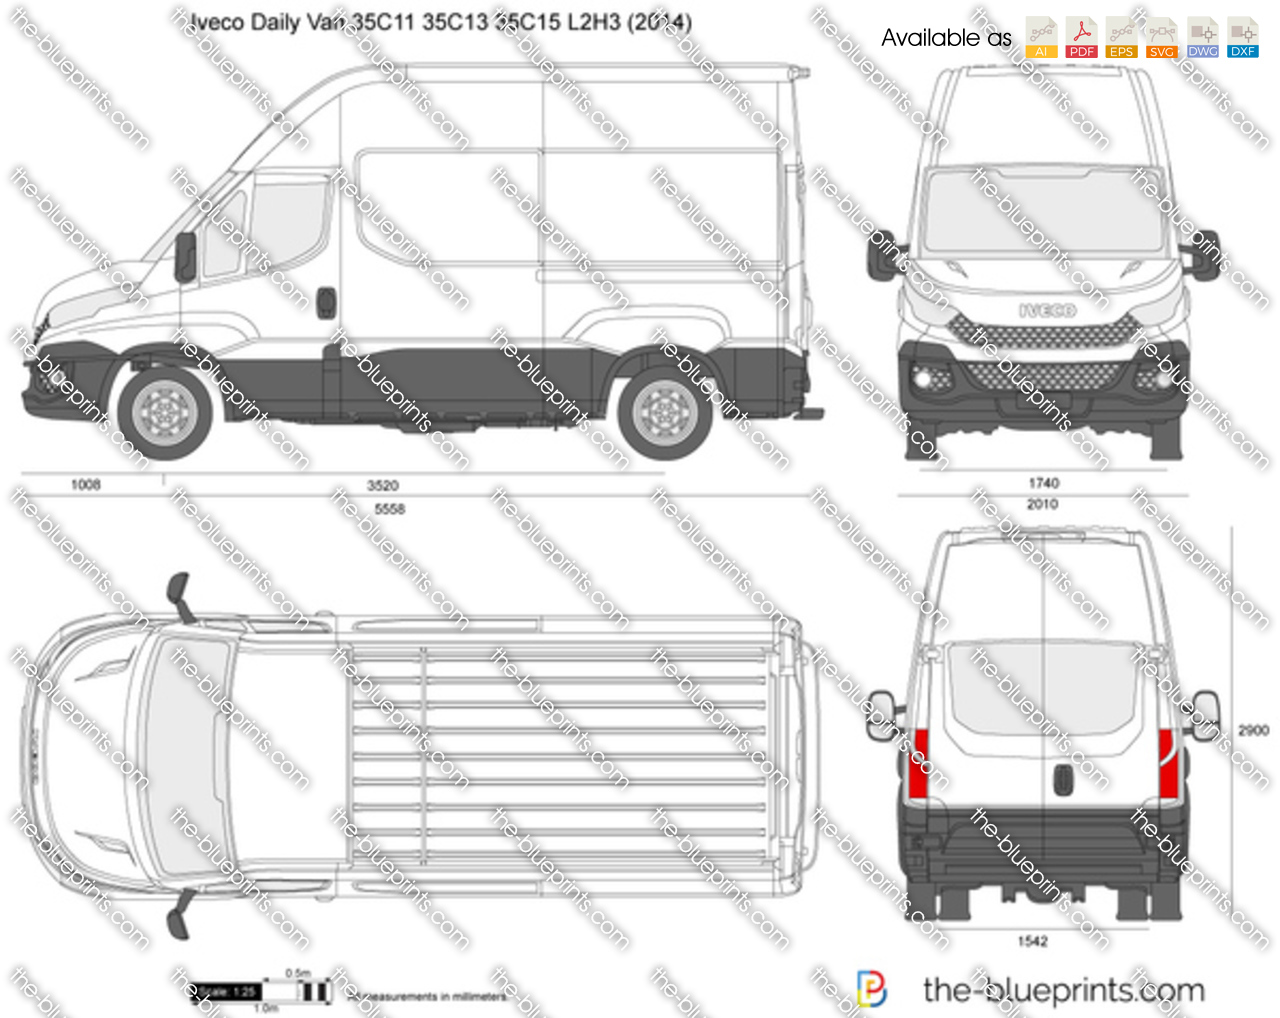 Wspaniały Iveco Daily Van 35C11 35C13 35C15 L2H3 vector drawing EQ43